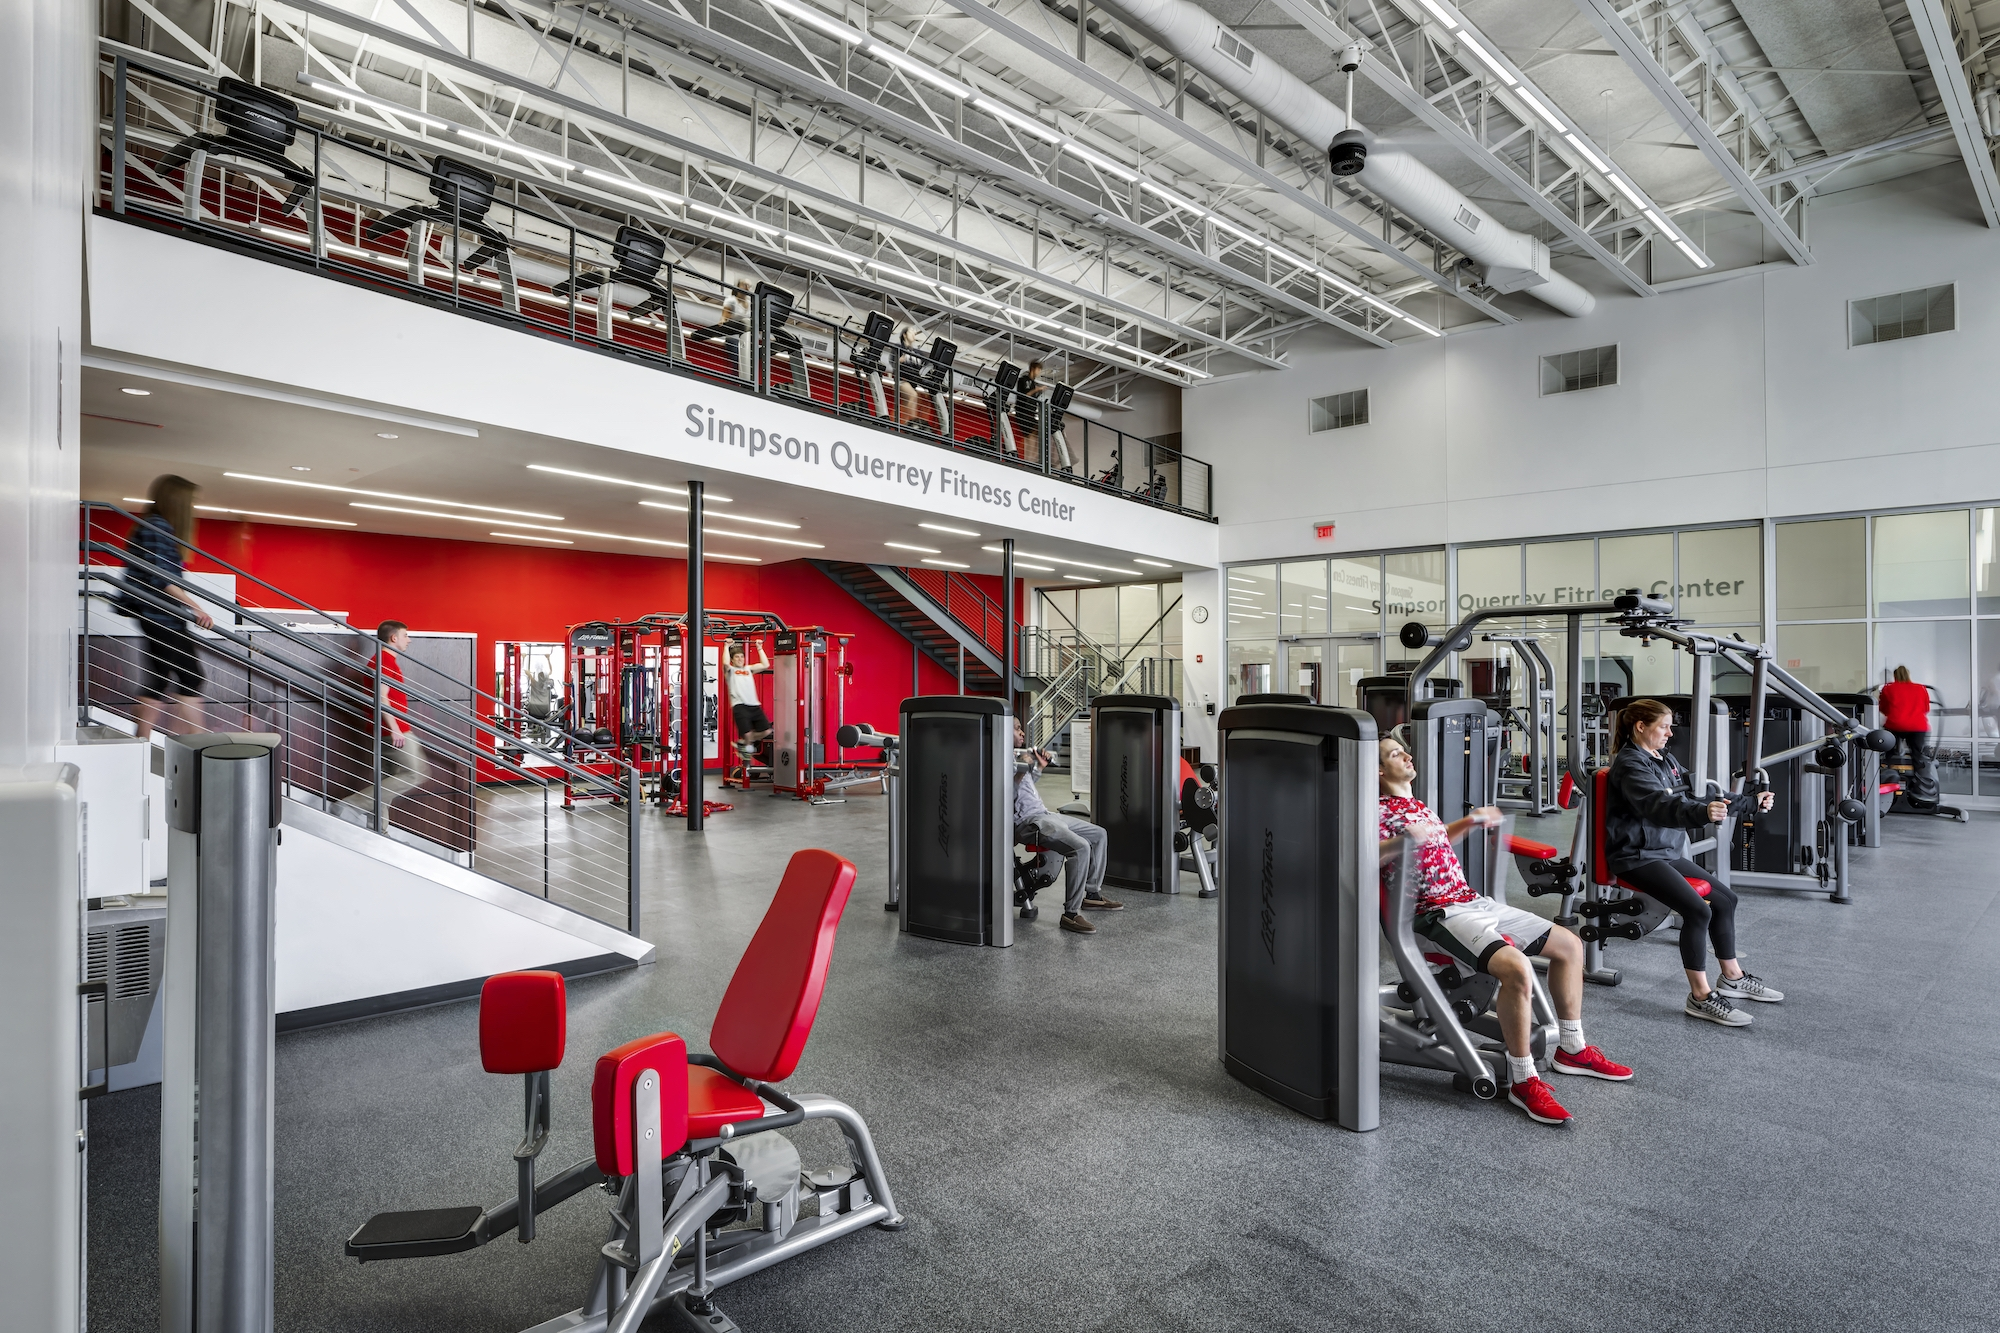 Ohio Wesleyan University Edwards Gym & Simpson Querrey Fitness Center - Delaware, Ohio